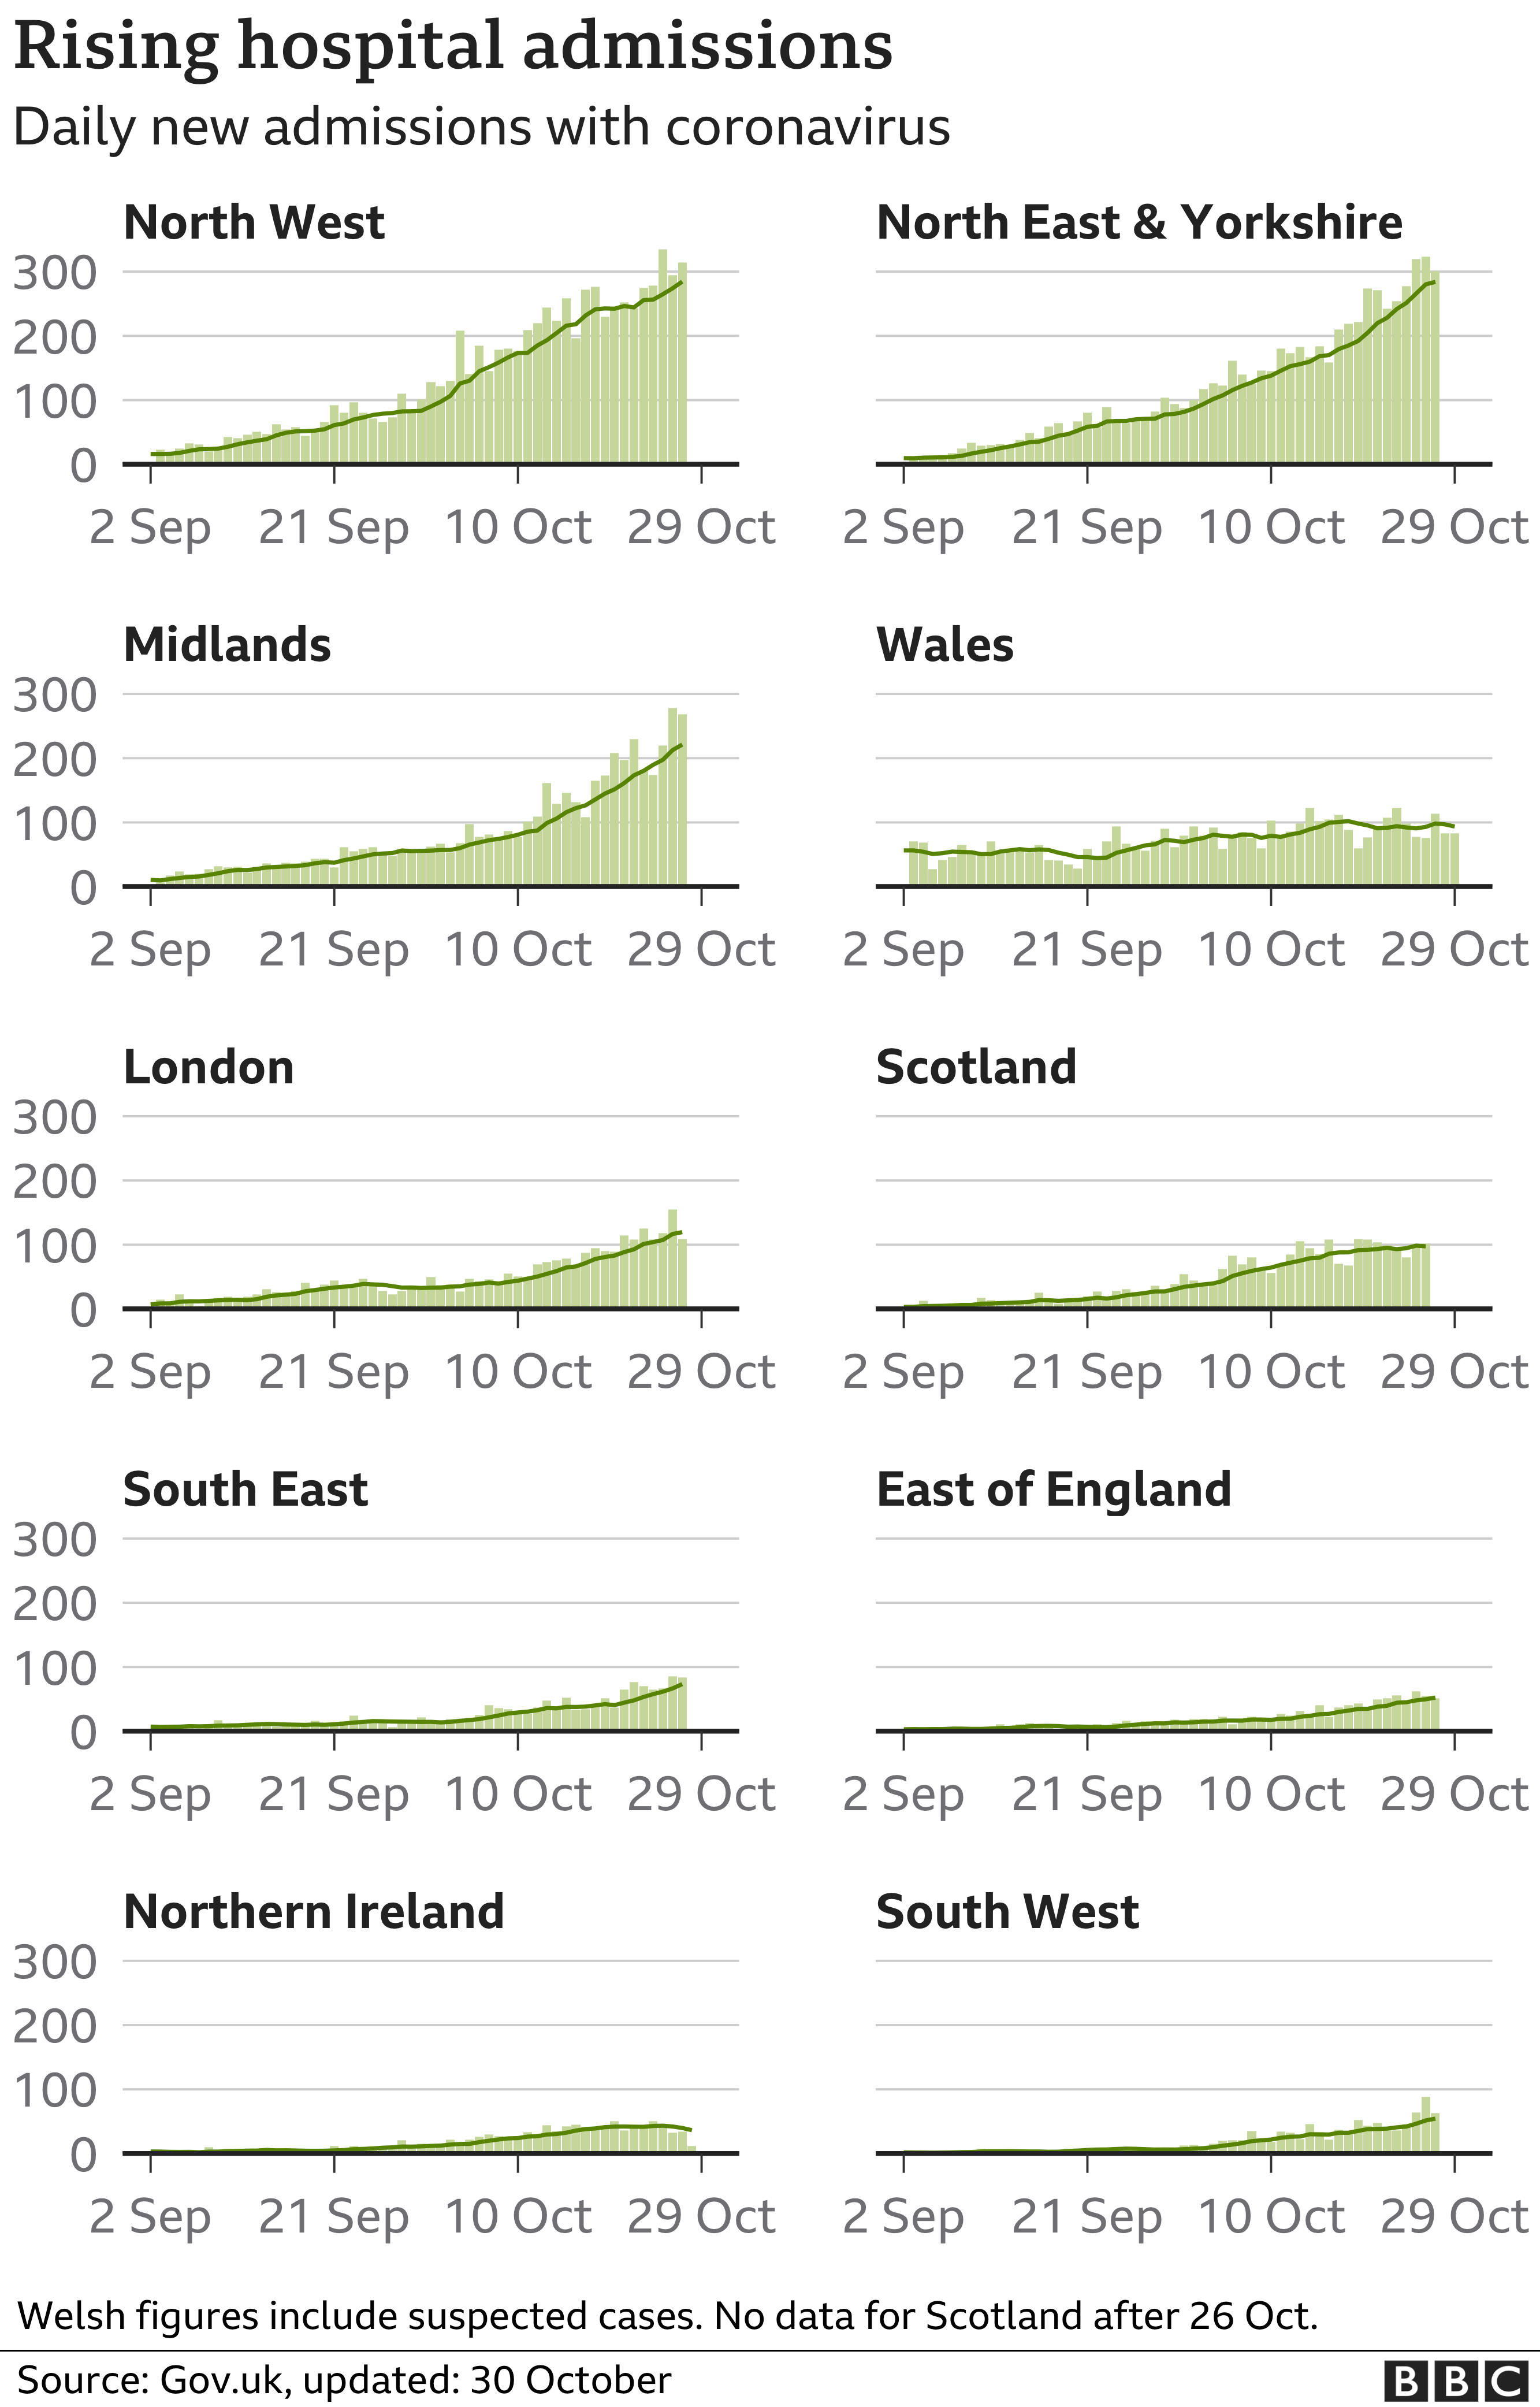 Chart shows hospital admissions are rising across the country, but highest in North West, North East and Yorkshire and Midlands